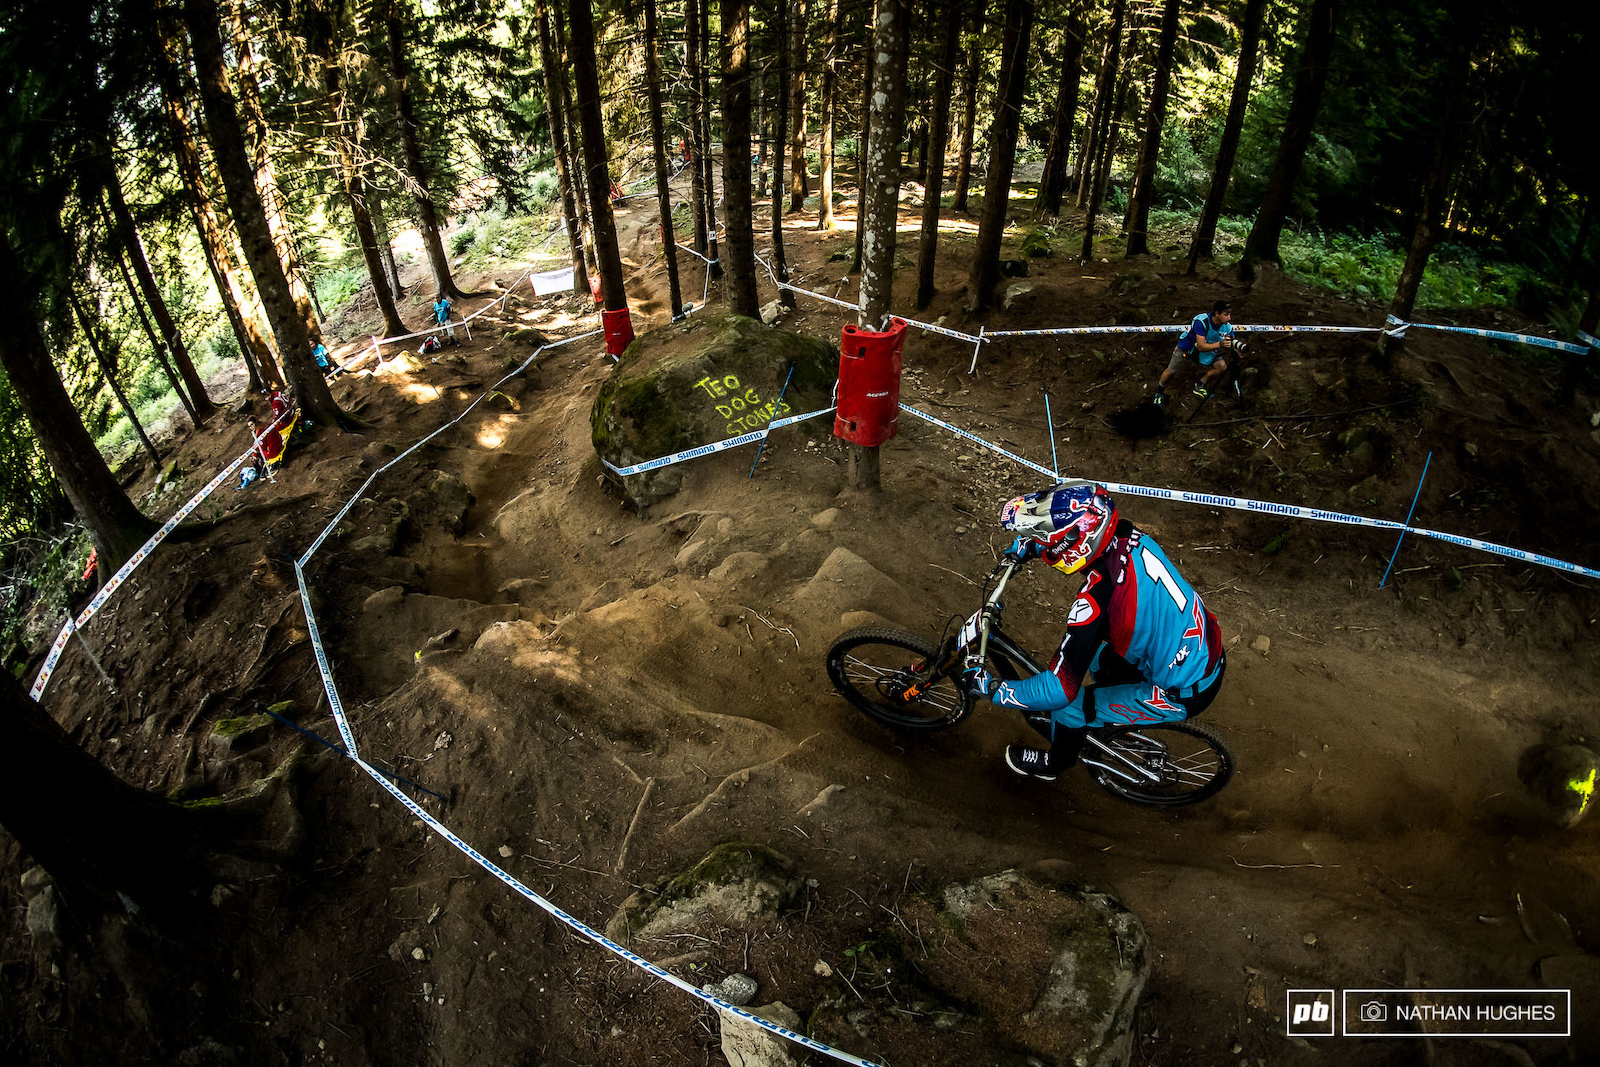 With 3 wins already in the bag here in VDS can Aaron Gwin lock it down once again and claim the 2017 series .